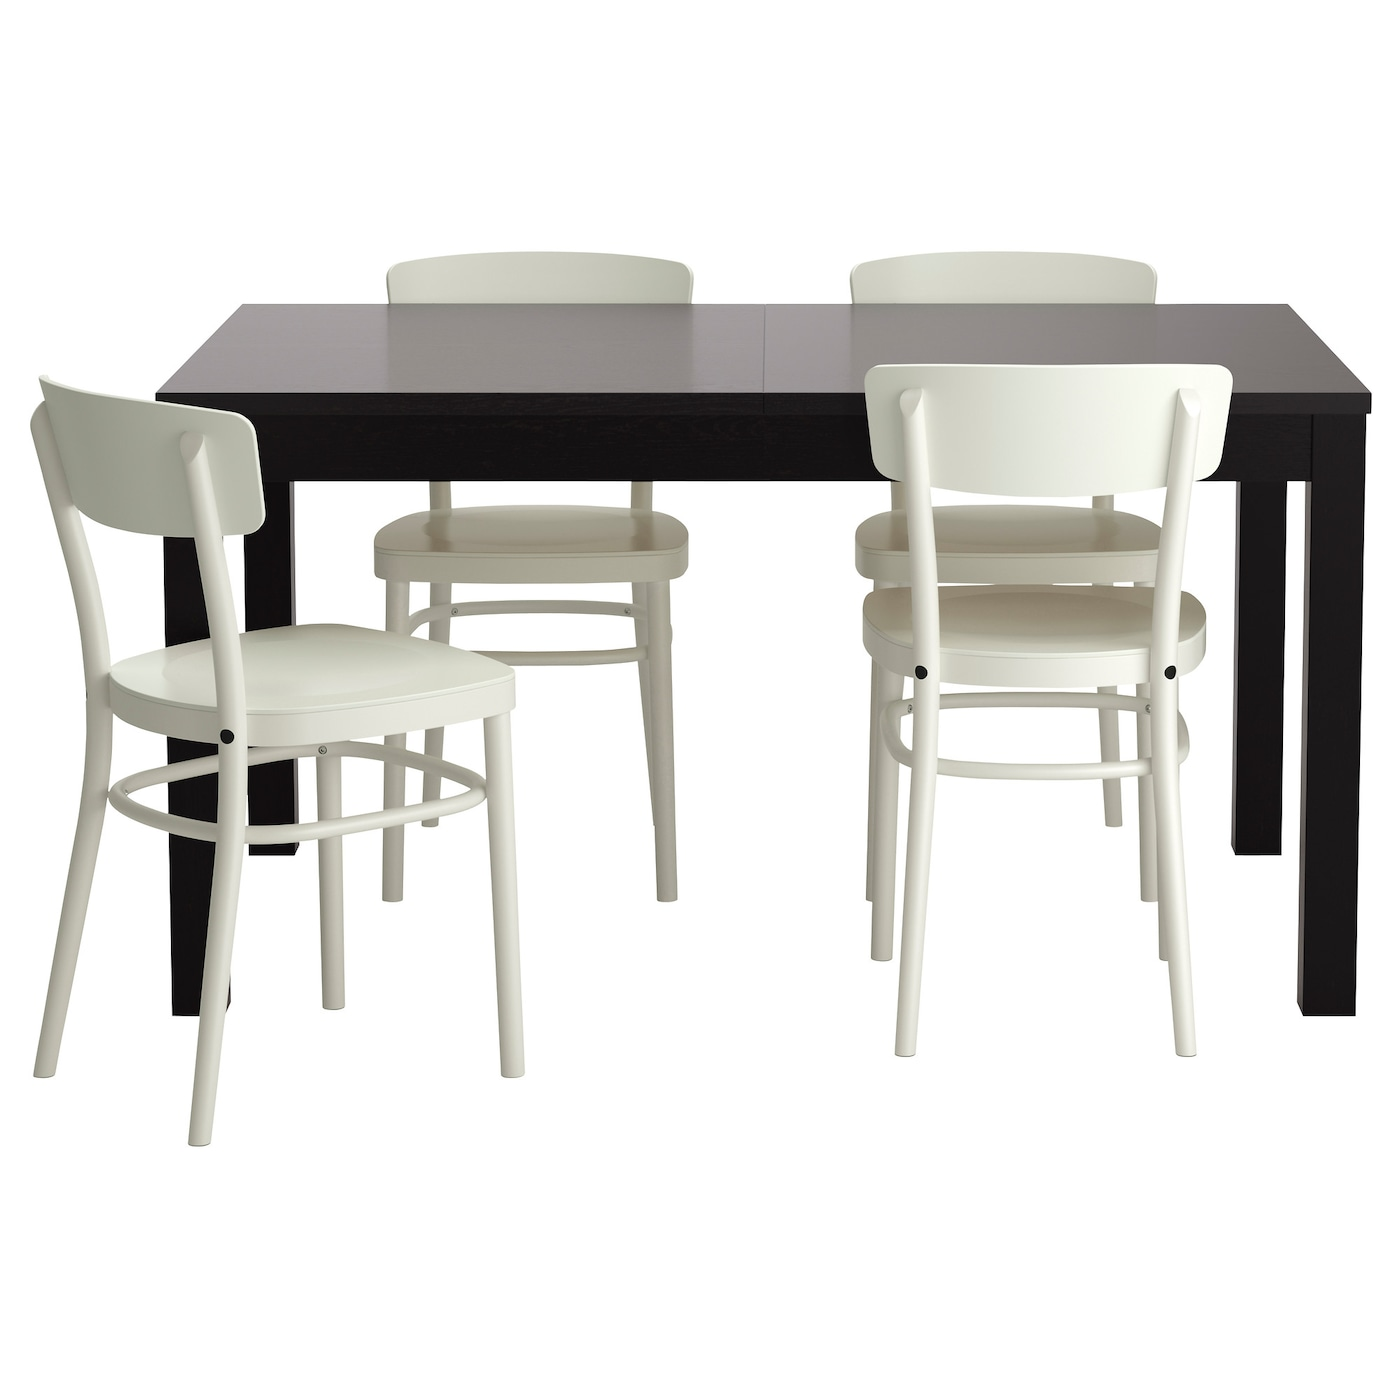 IKEA IDOLF/BJURSTA table and 4 chairs The clear-lacquered surface is easy to wipe clean.